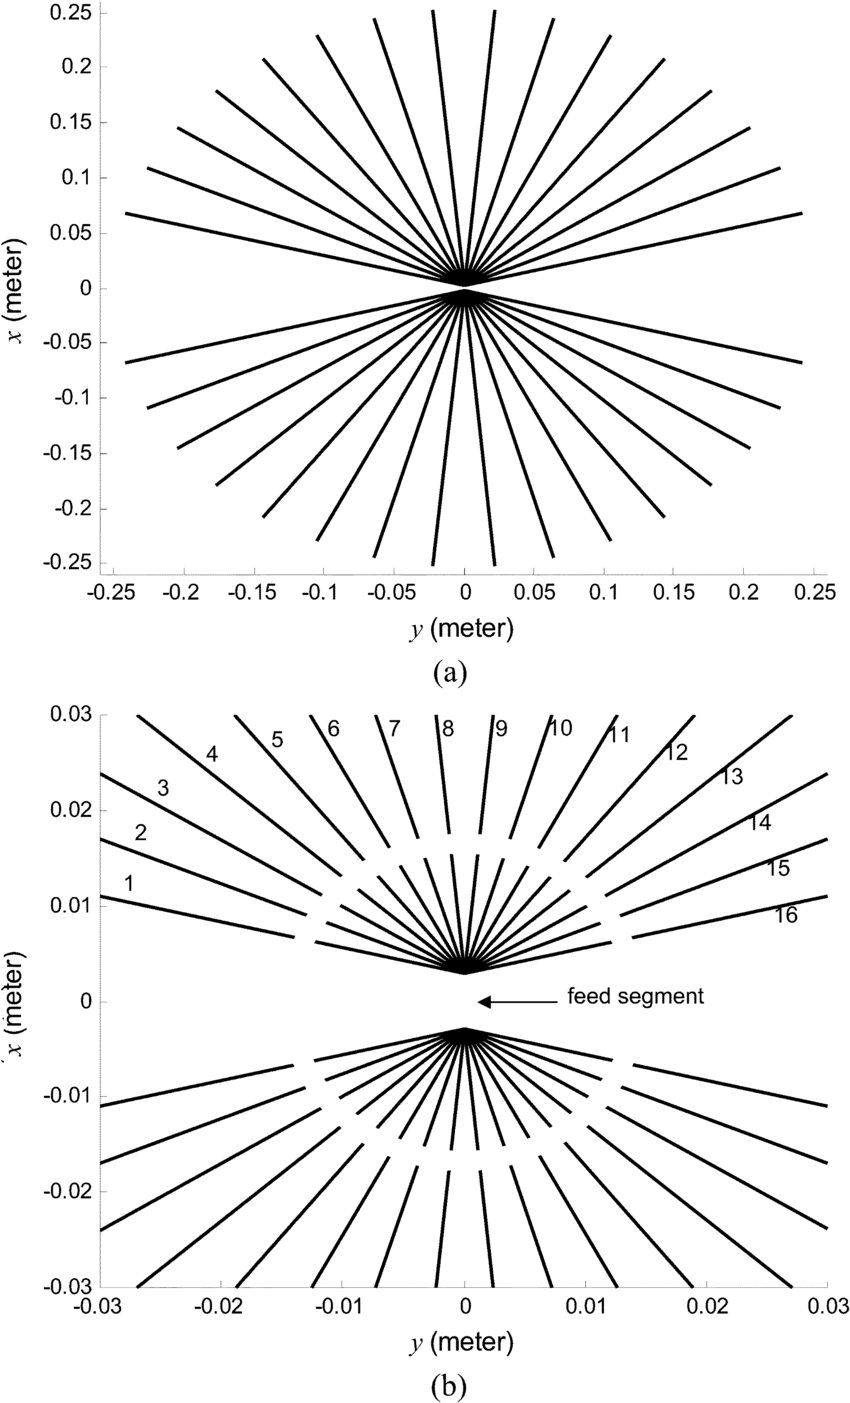 medium resolution of  a geometry of the proposed adaptive wire bow tie antenna used in simulations